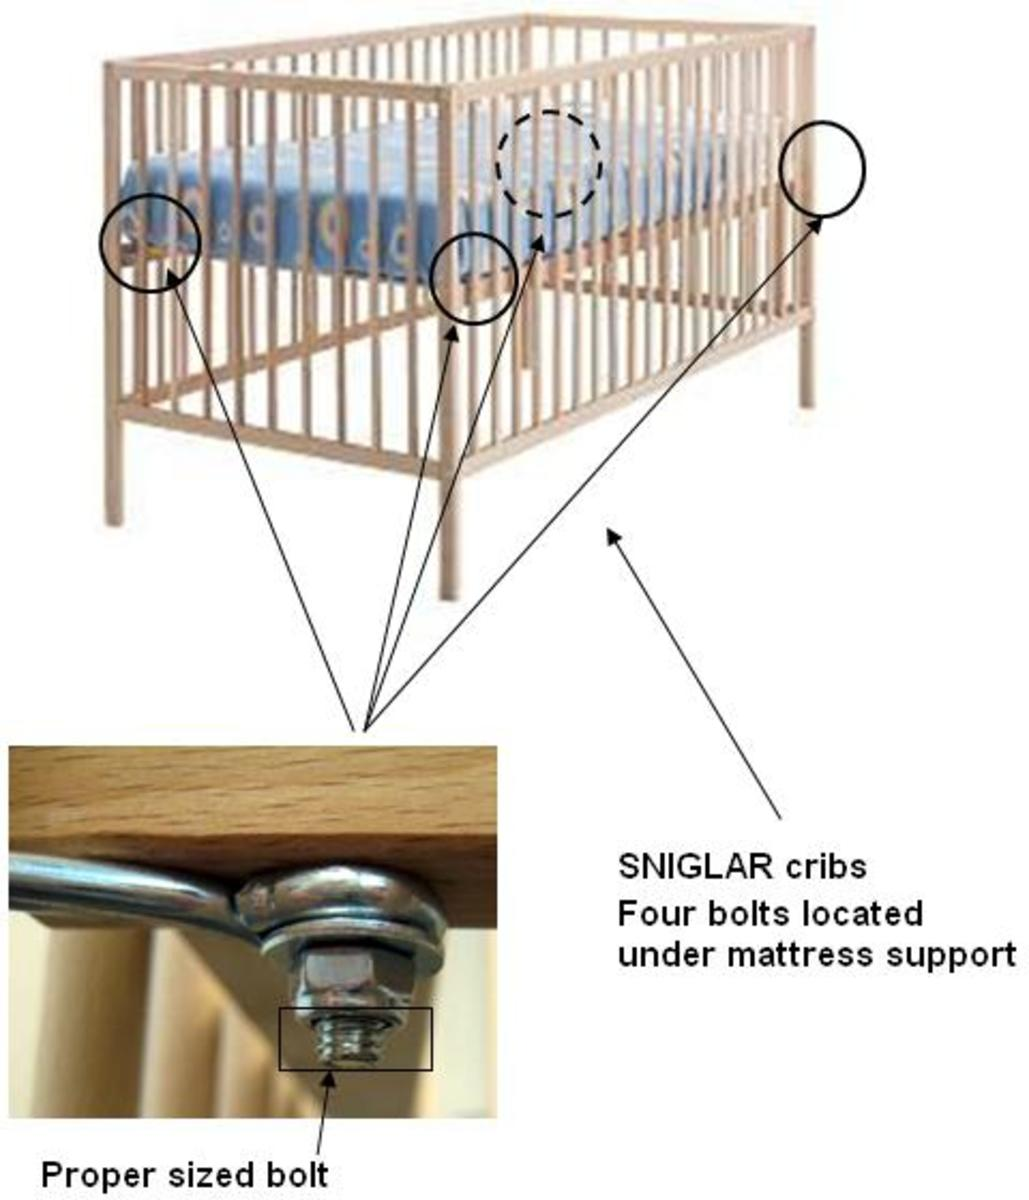 IKEA Recalled the SNIGLAR crib due to Faulty Manufacuring